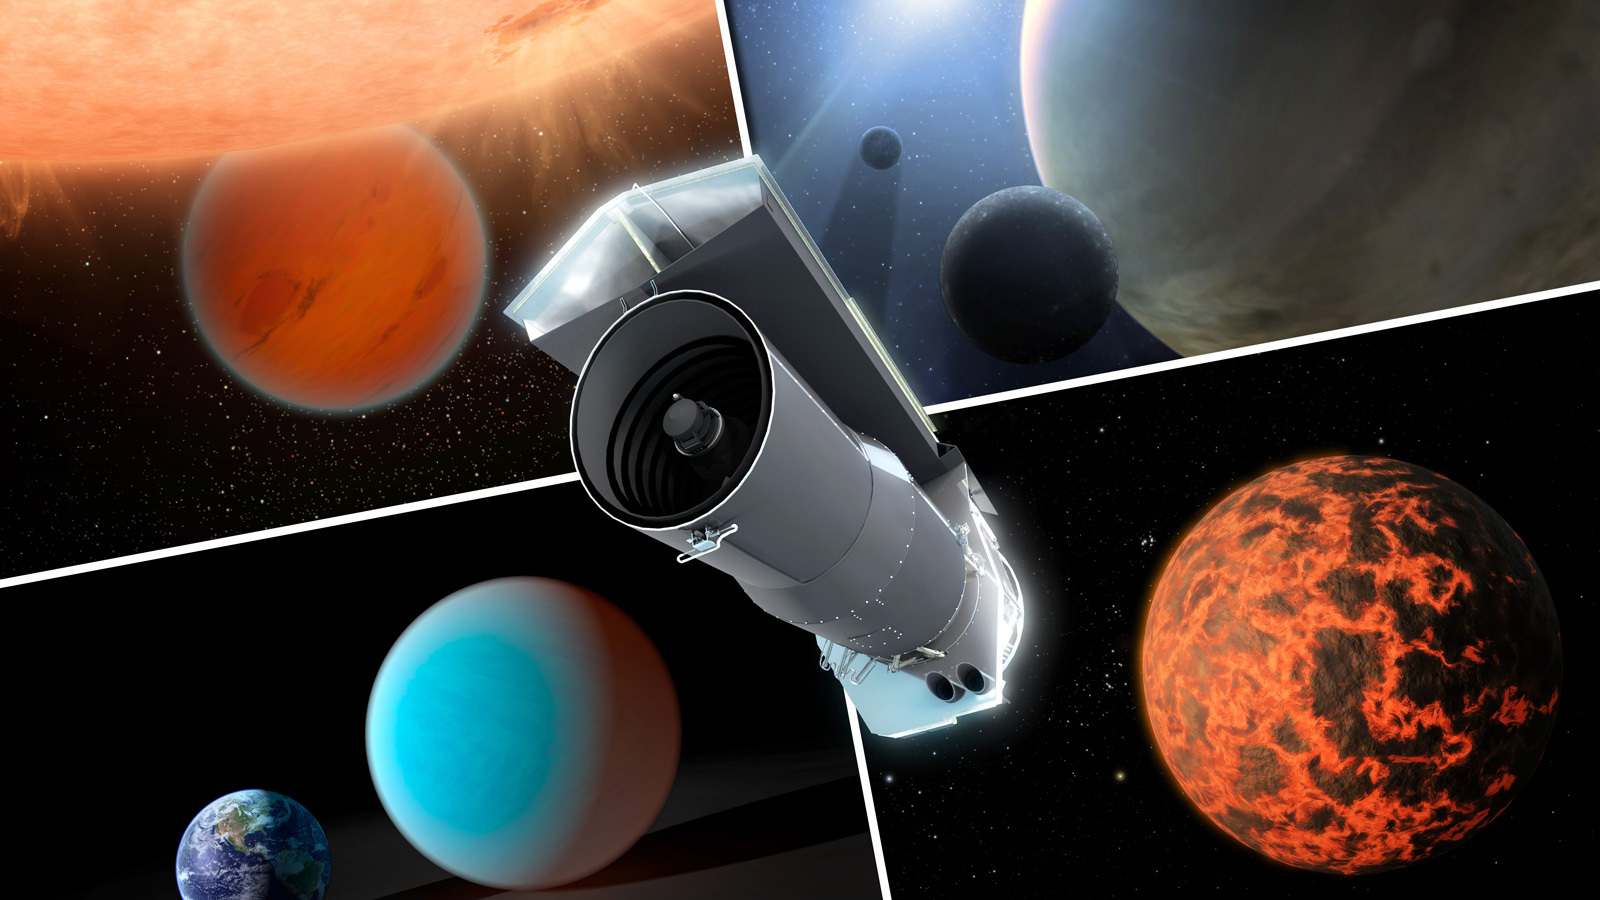 Composite artist's concept of Spitzer and some of its discoveries.